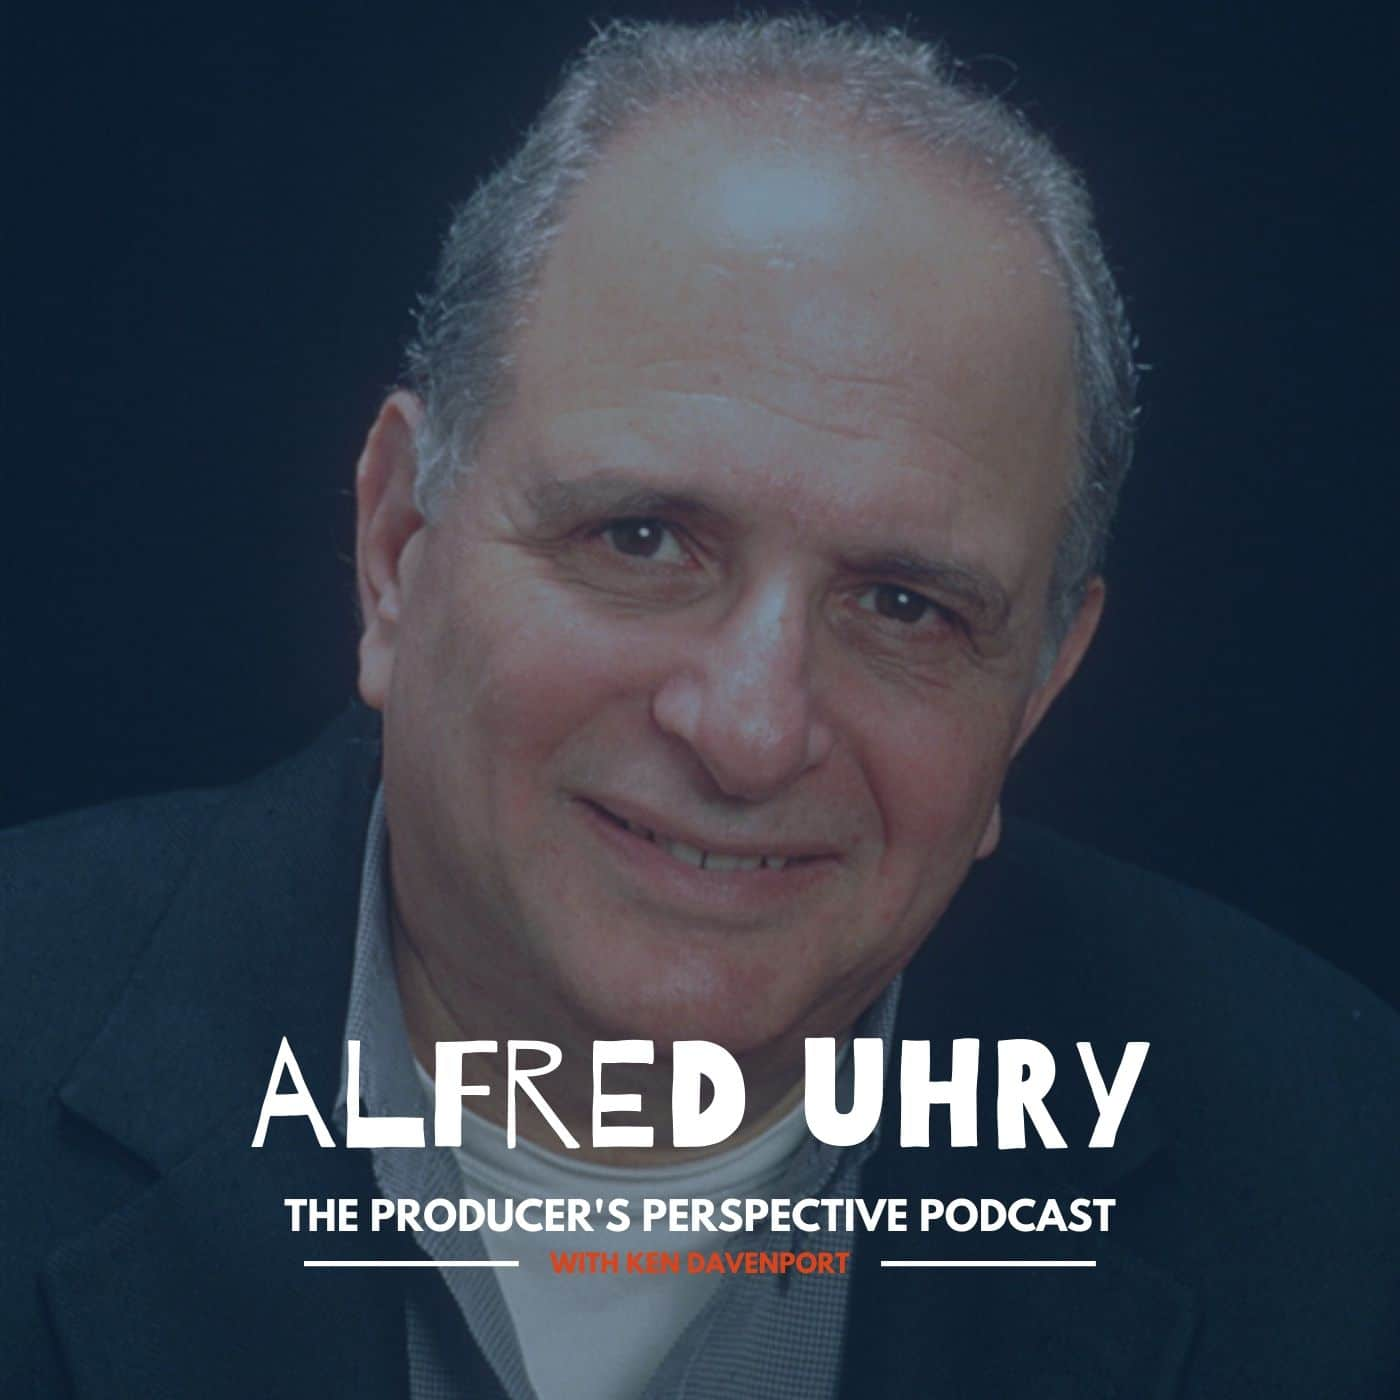 Ken Davenport's The Producer's Perspective Podcast Episode 174 - Alfred Uhry